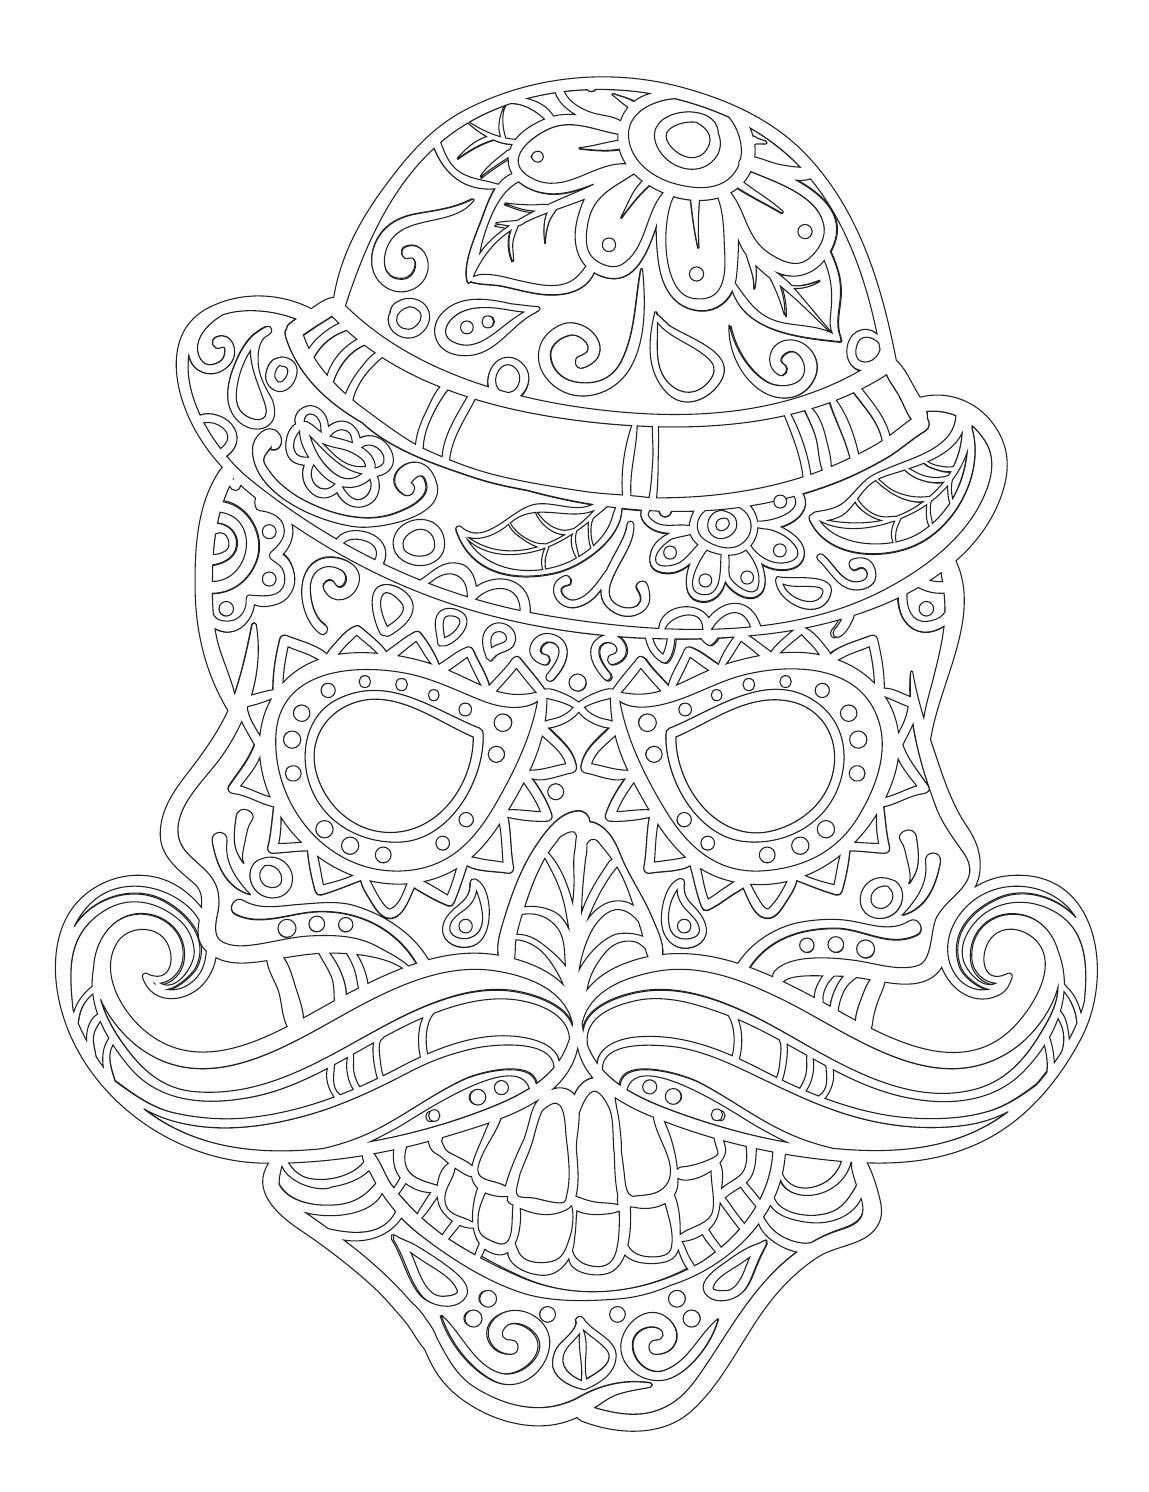 Halloween art therapy coloring pages - Art Therapy Vysm T Skull Relaxation Coloring Book Not Only For Adults